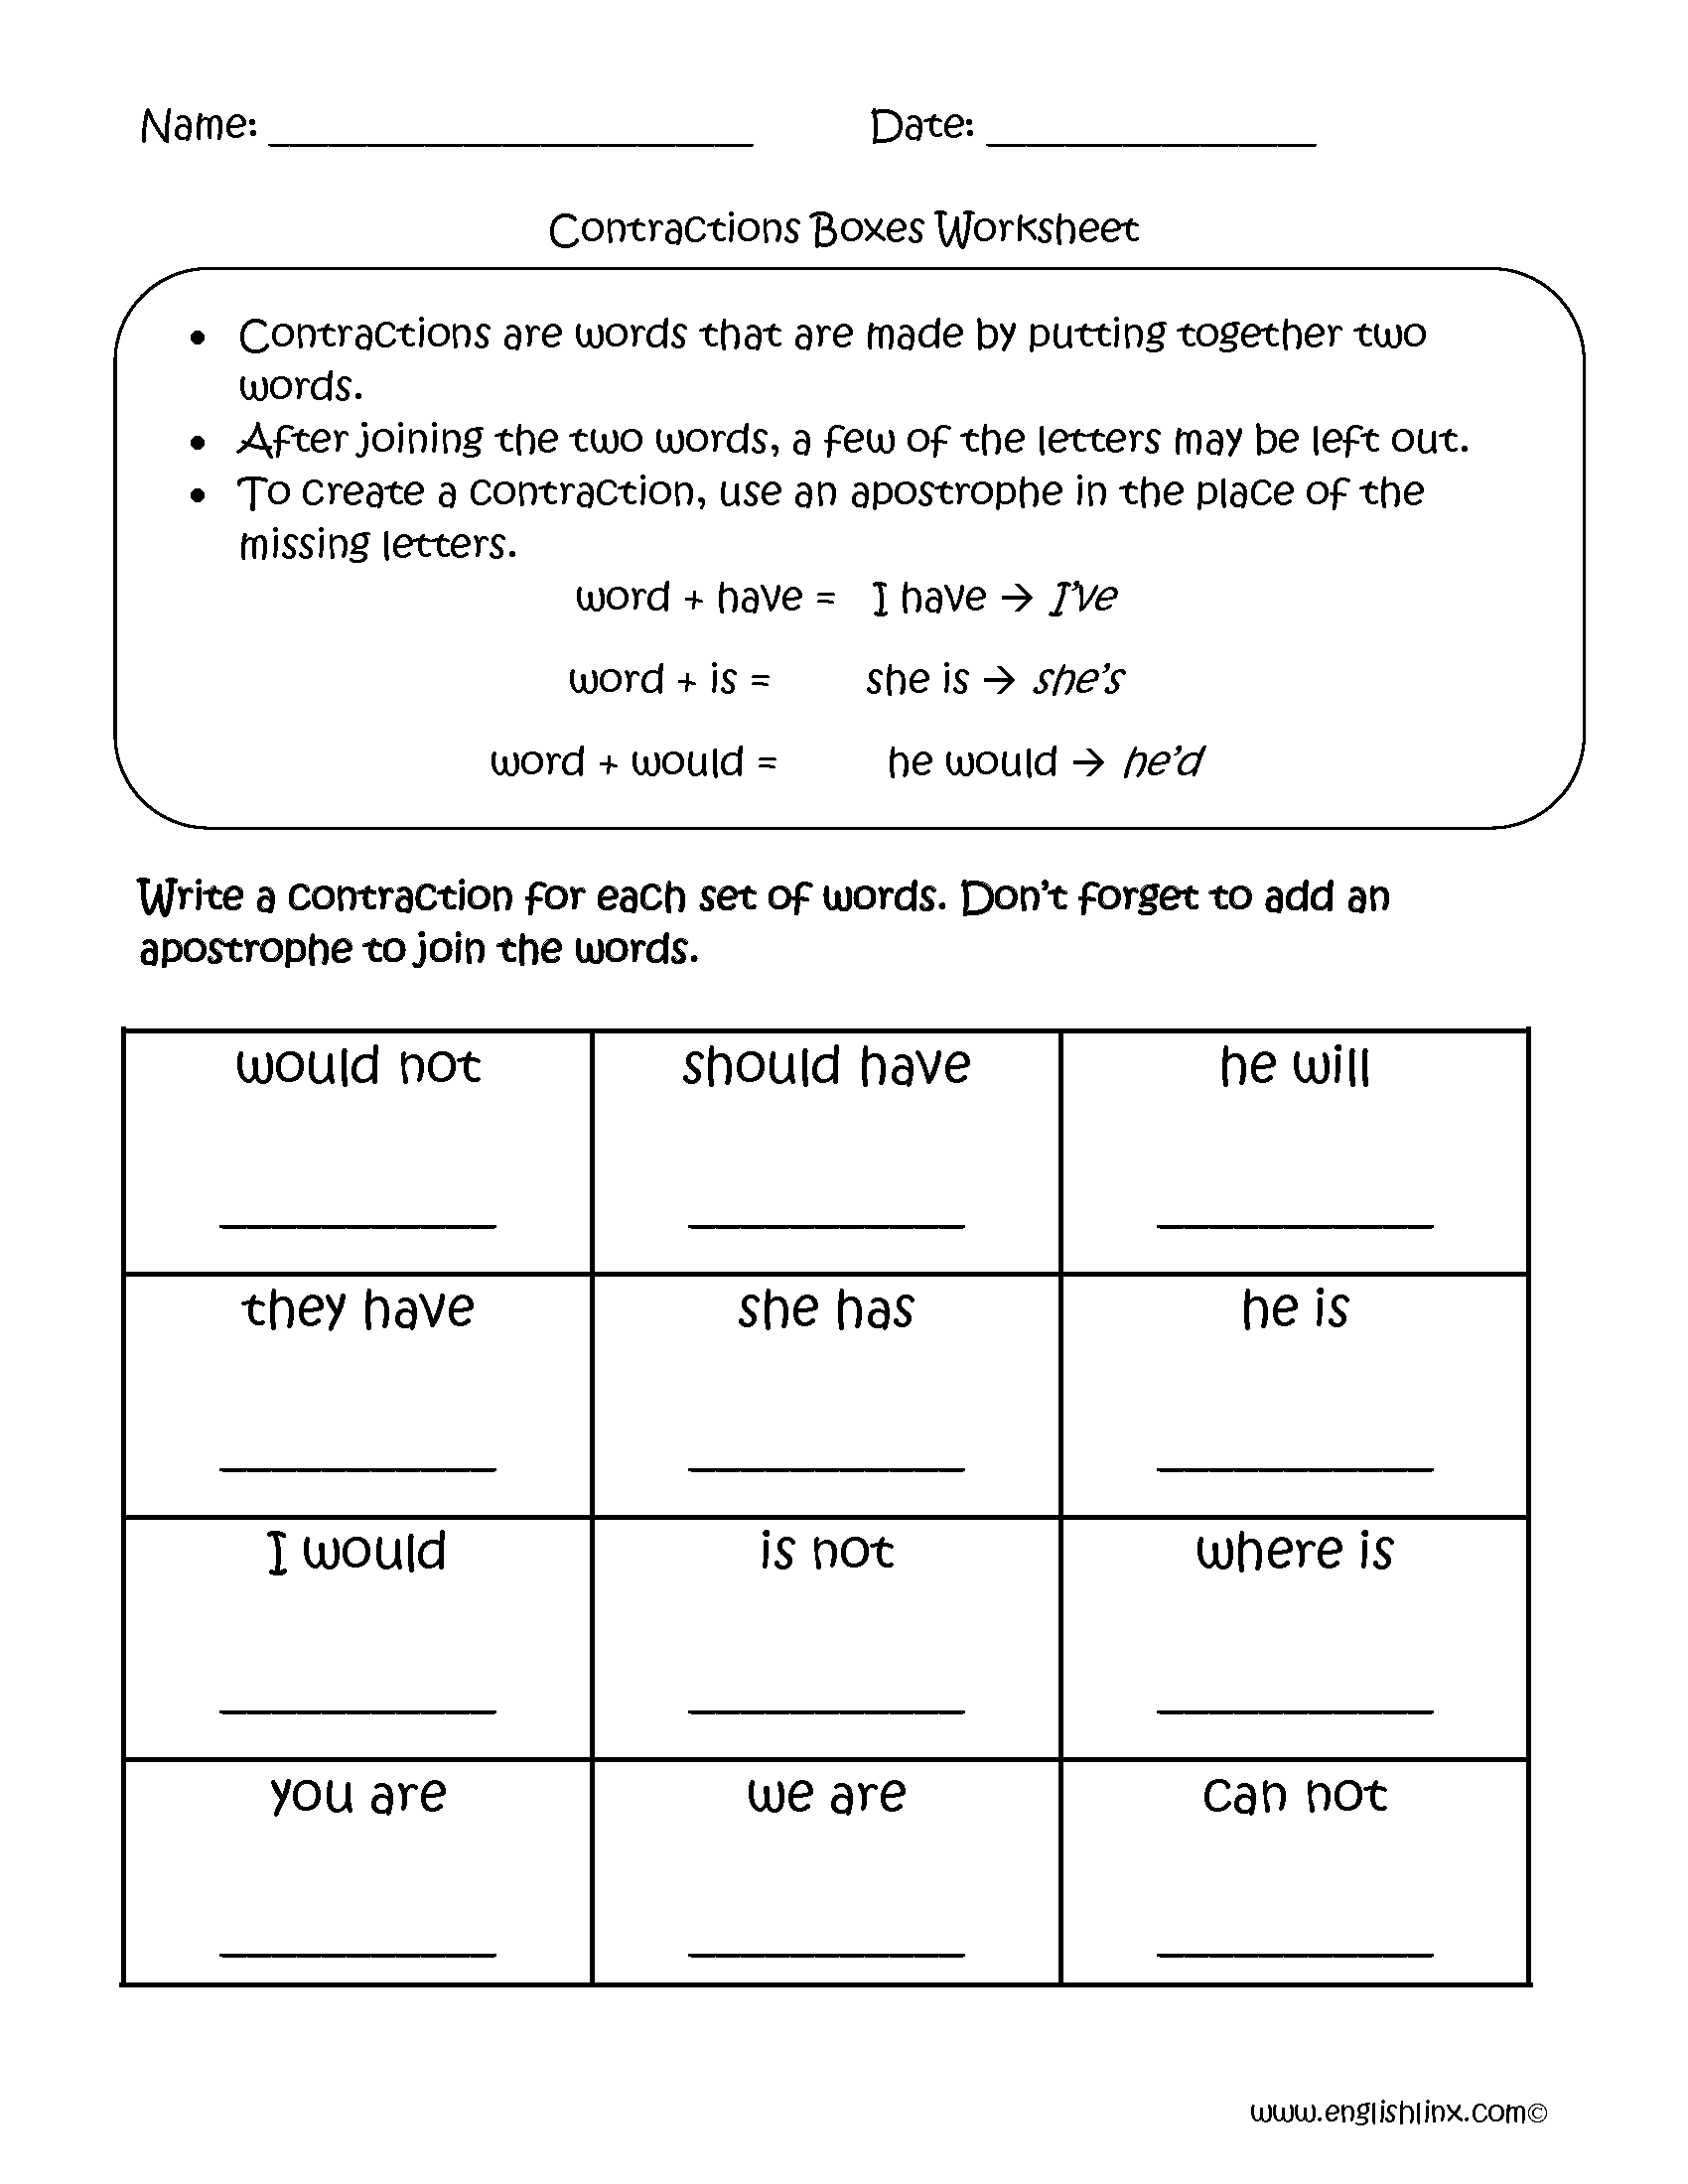 Worksheets Free Printable Contraction Worksheets englishlinx com contractions worksheets boxes worksheets